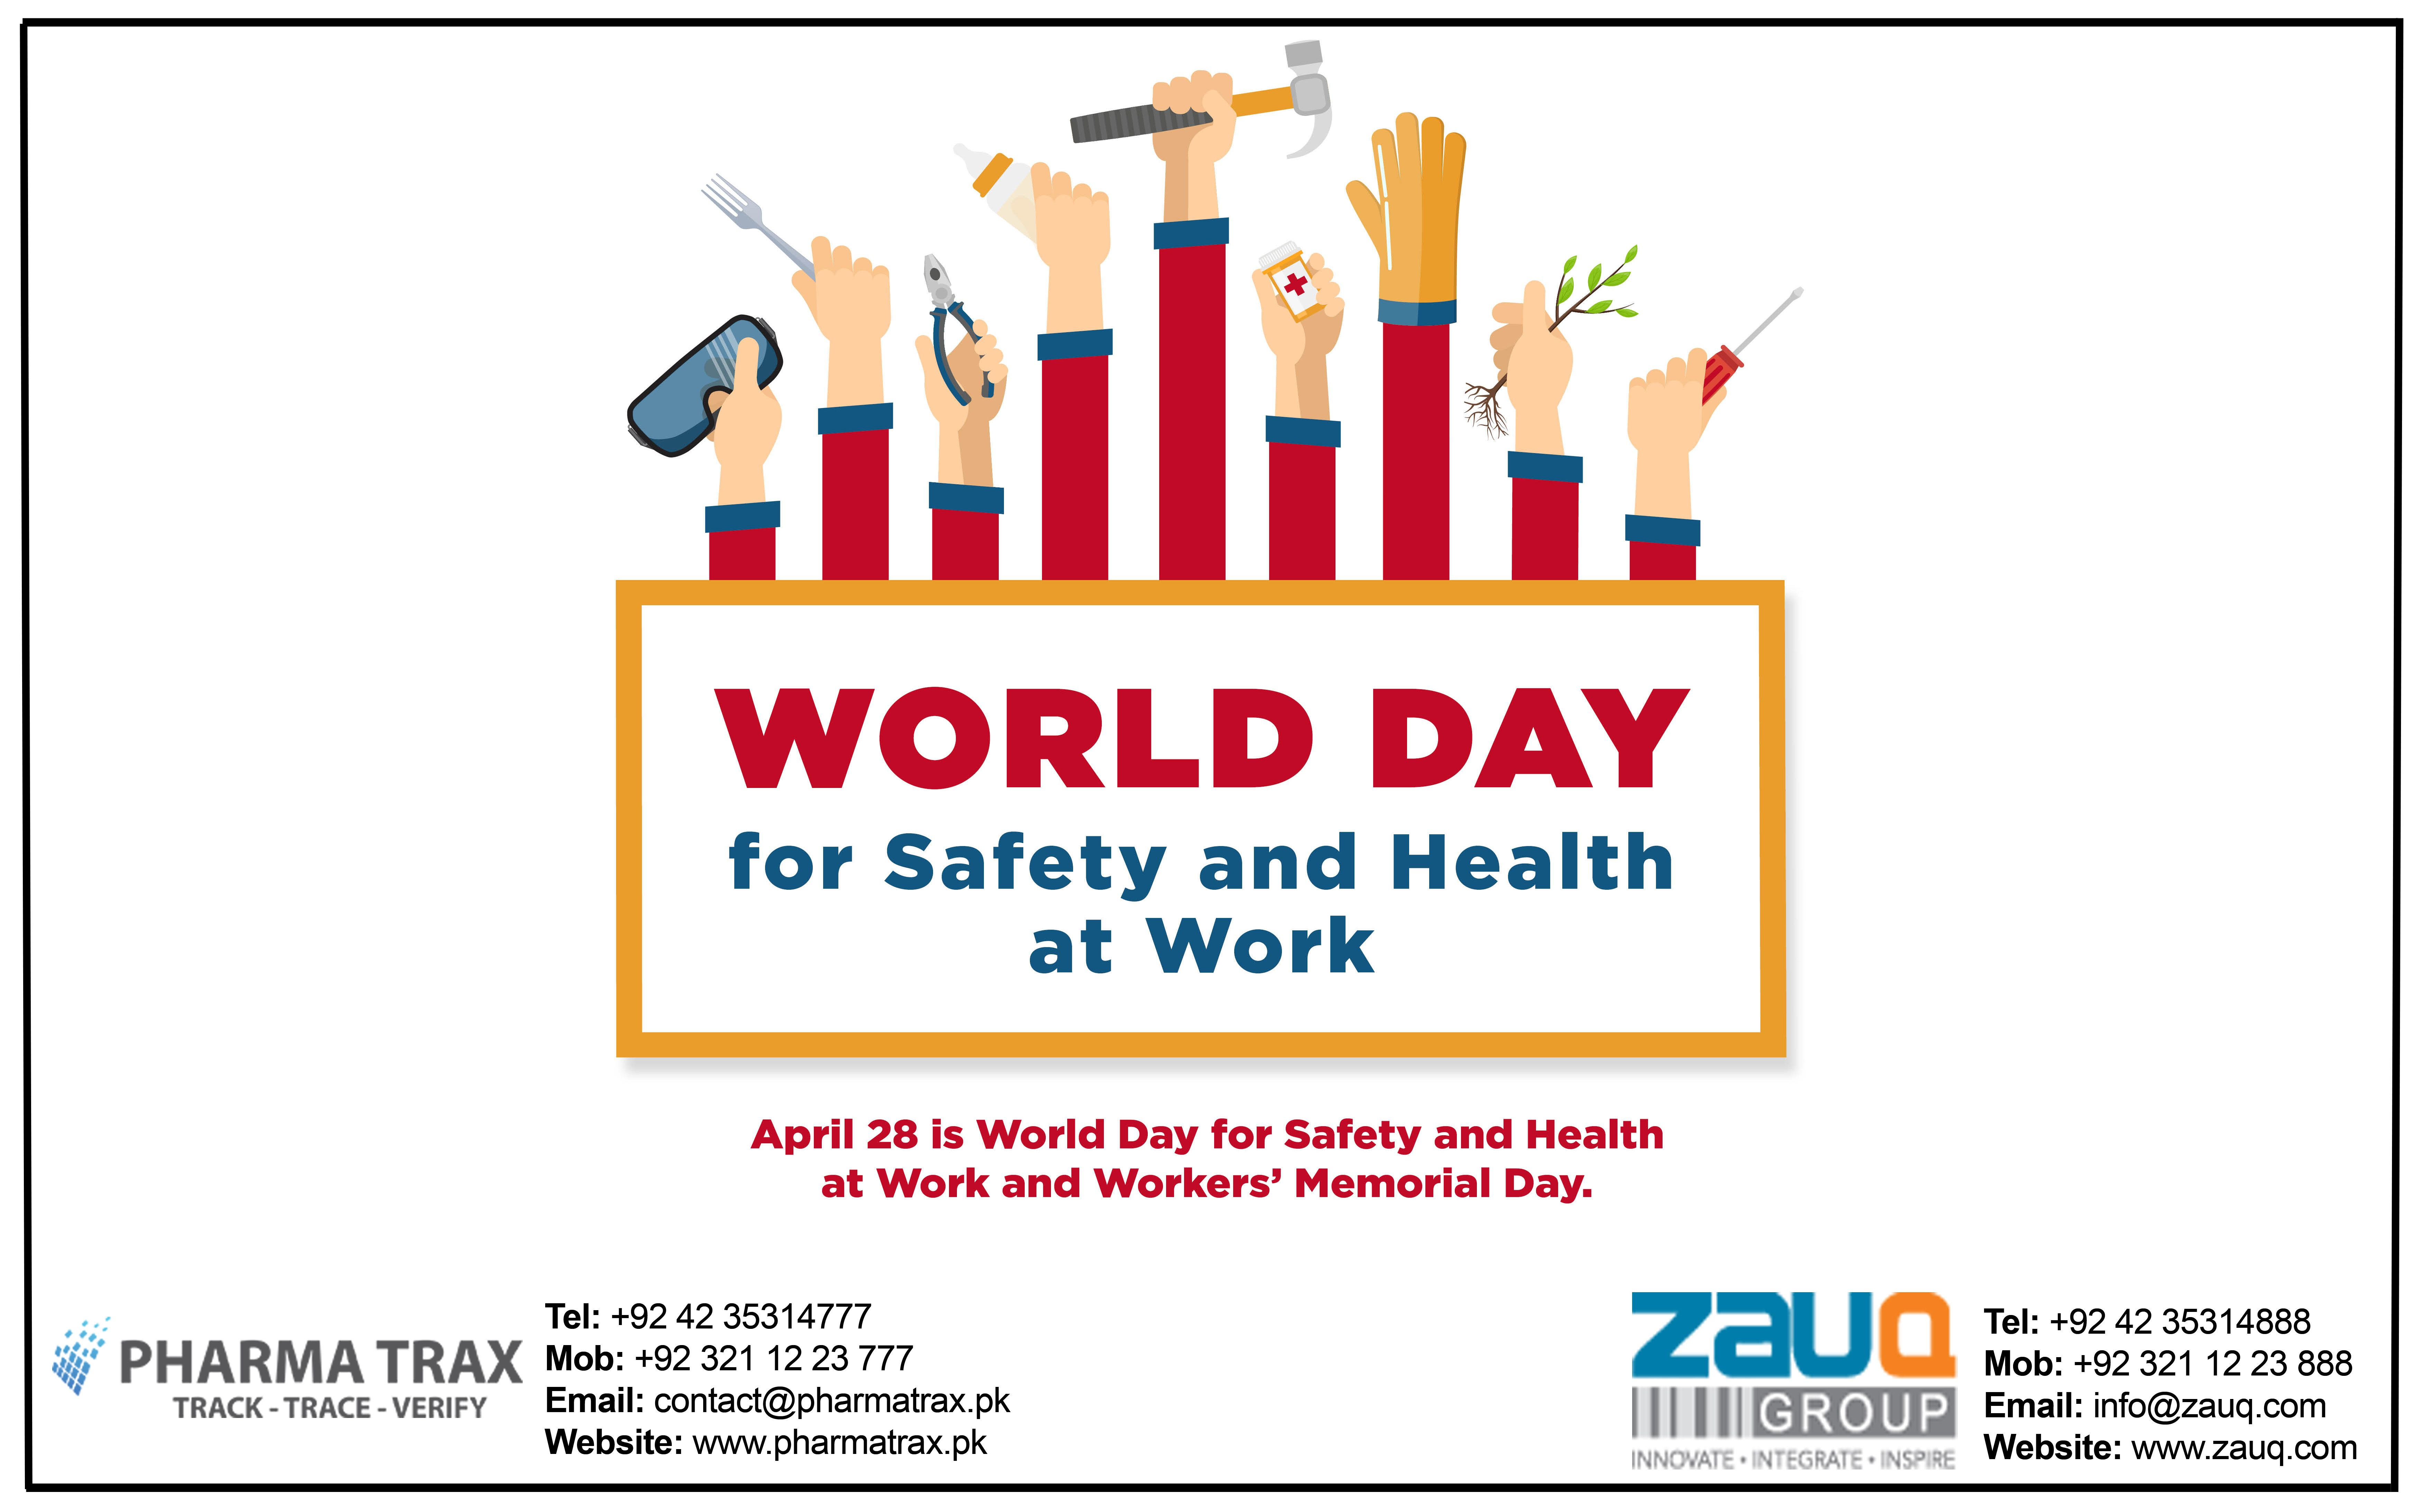 The ''World Day for Safety and Health at Work'' is held on